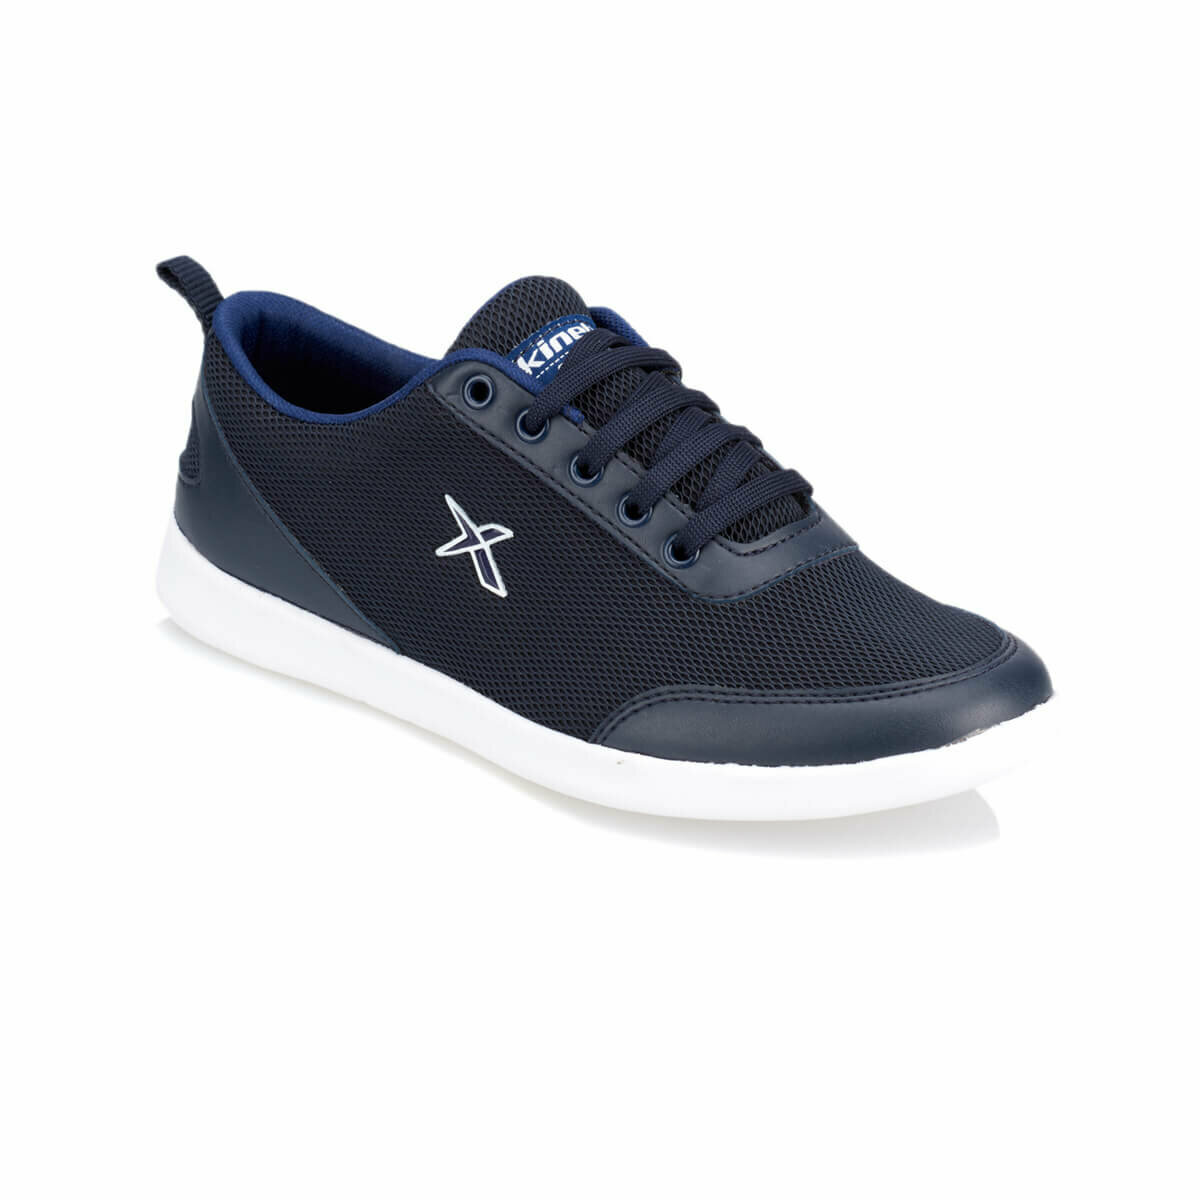 FLO LINDA Navy Blue Women 'S Sneaker Shoes KINETIX